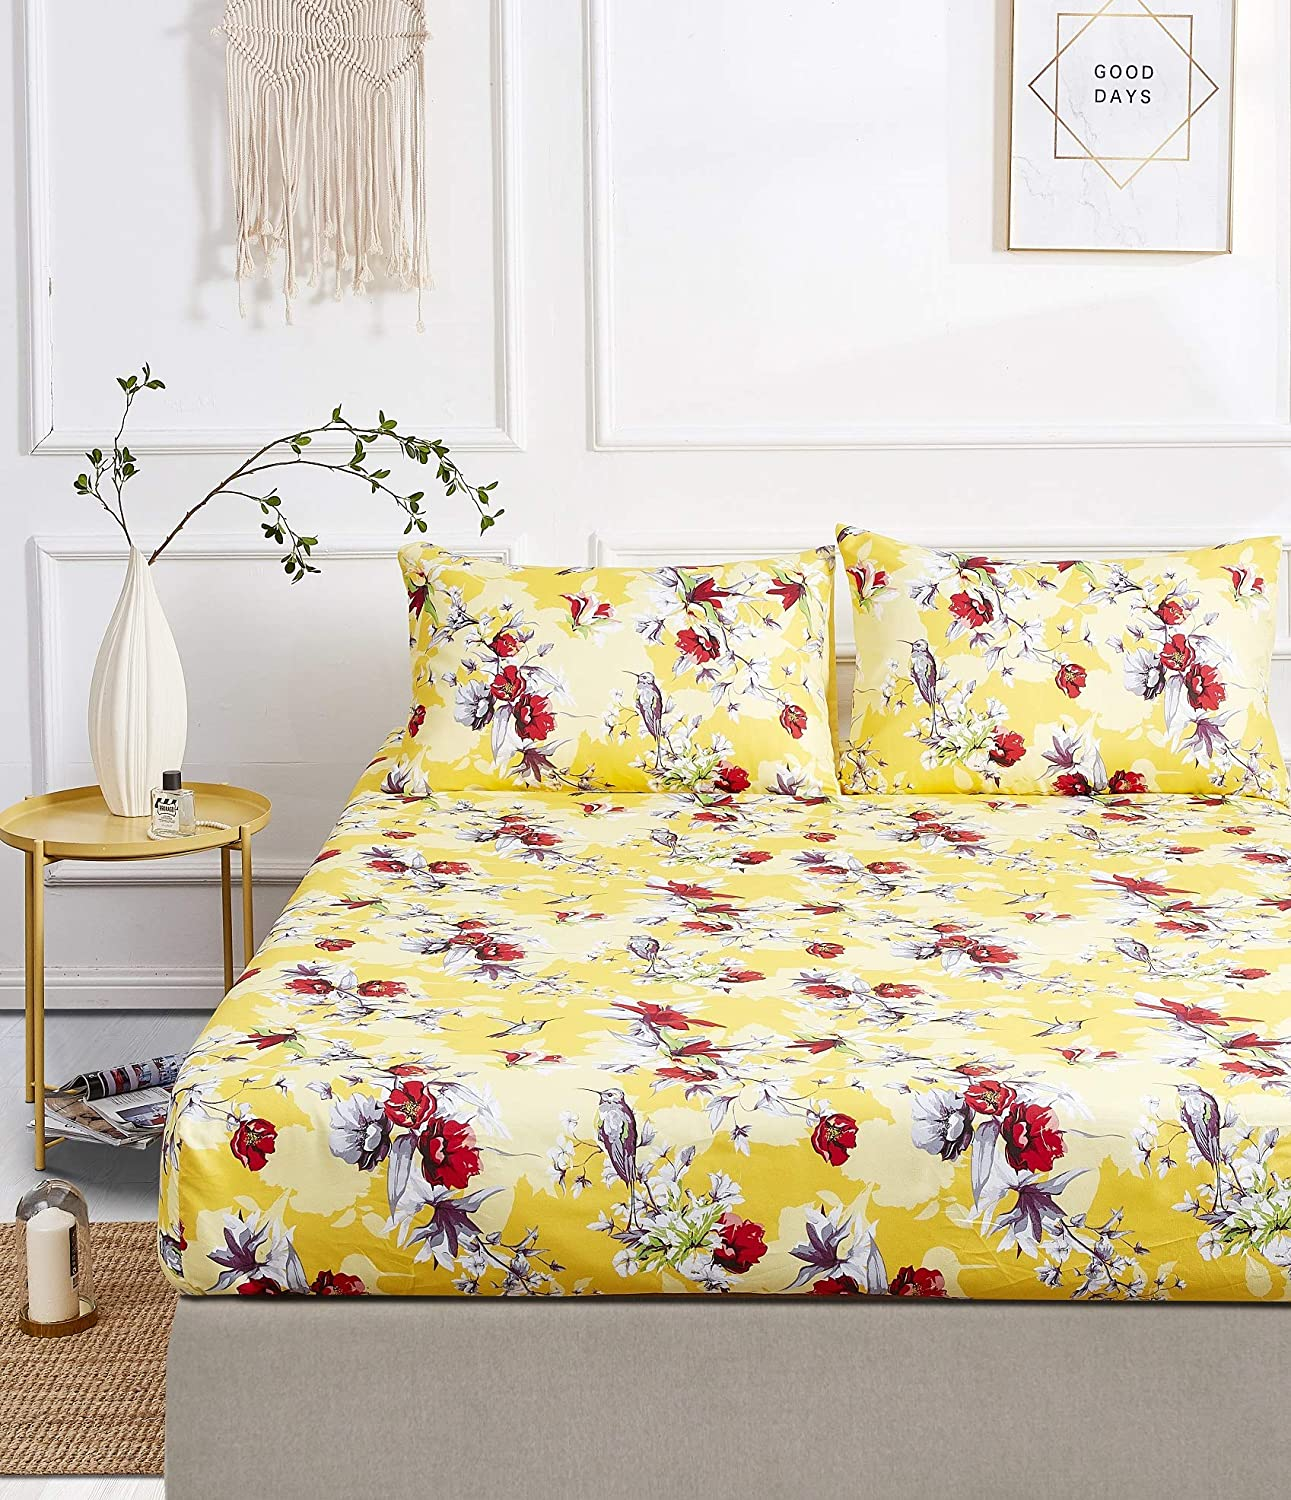 5 Best Color Bed Sheets To Hide Stains